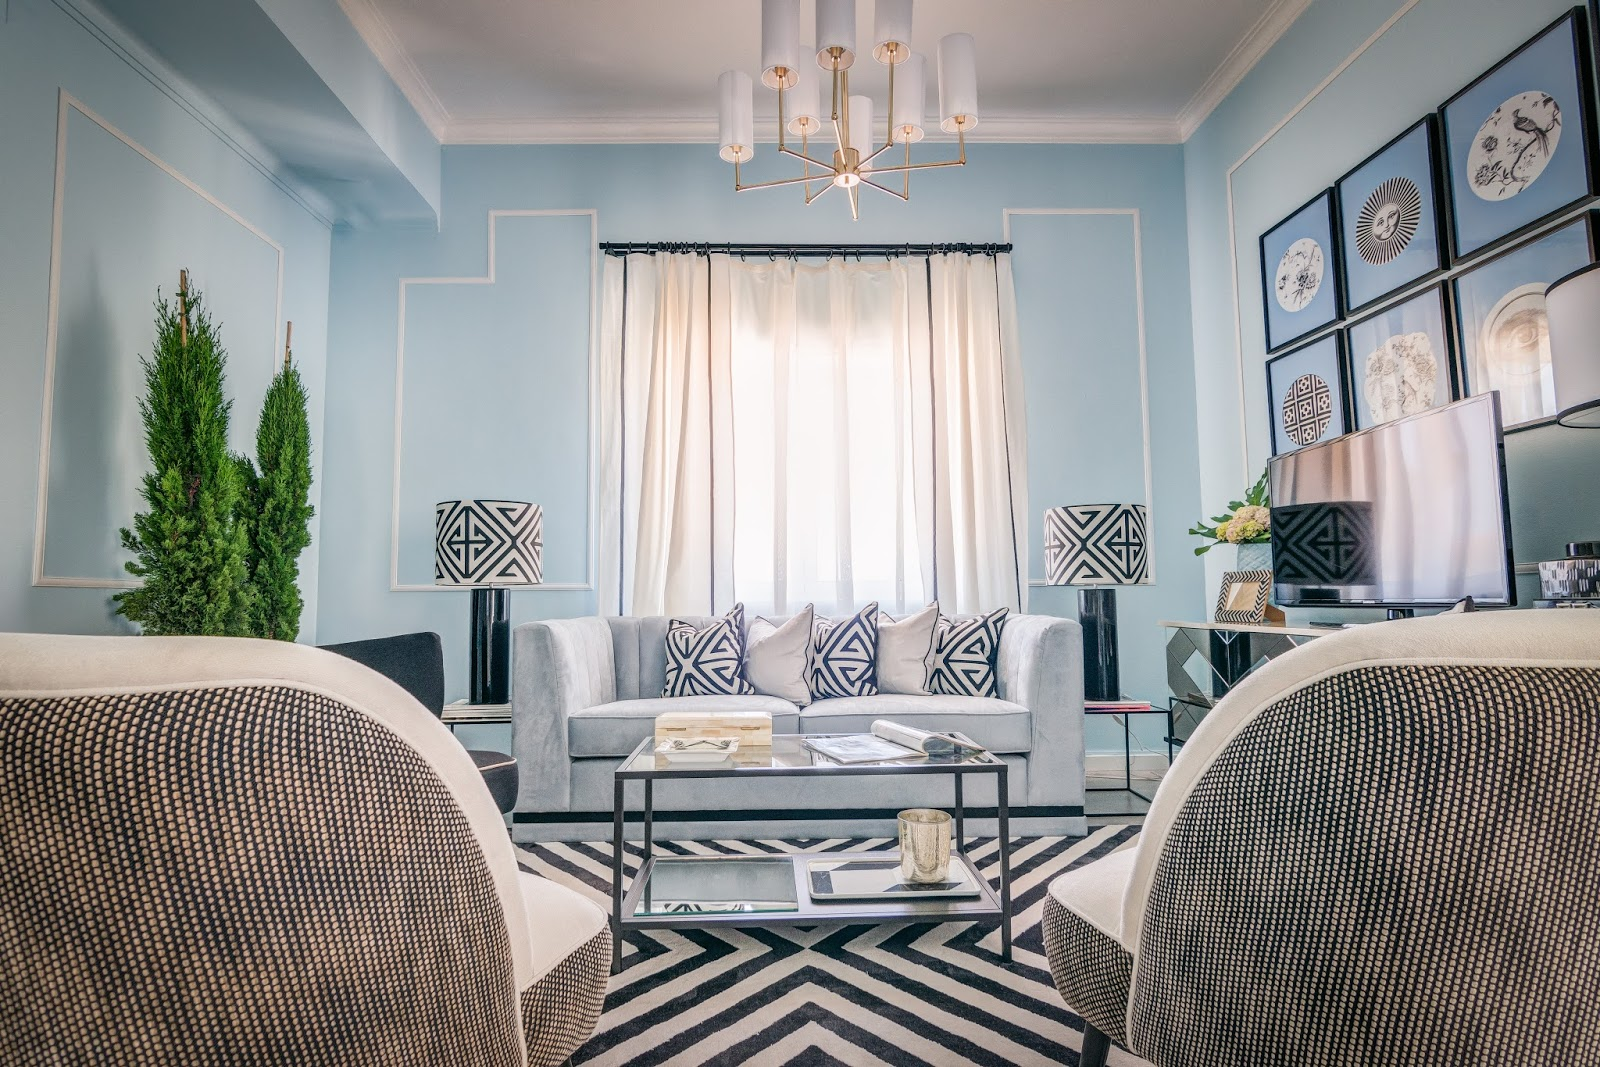 Home-Styling   Ana Antunes: Querido Mudei a Casa #2512 ...